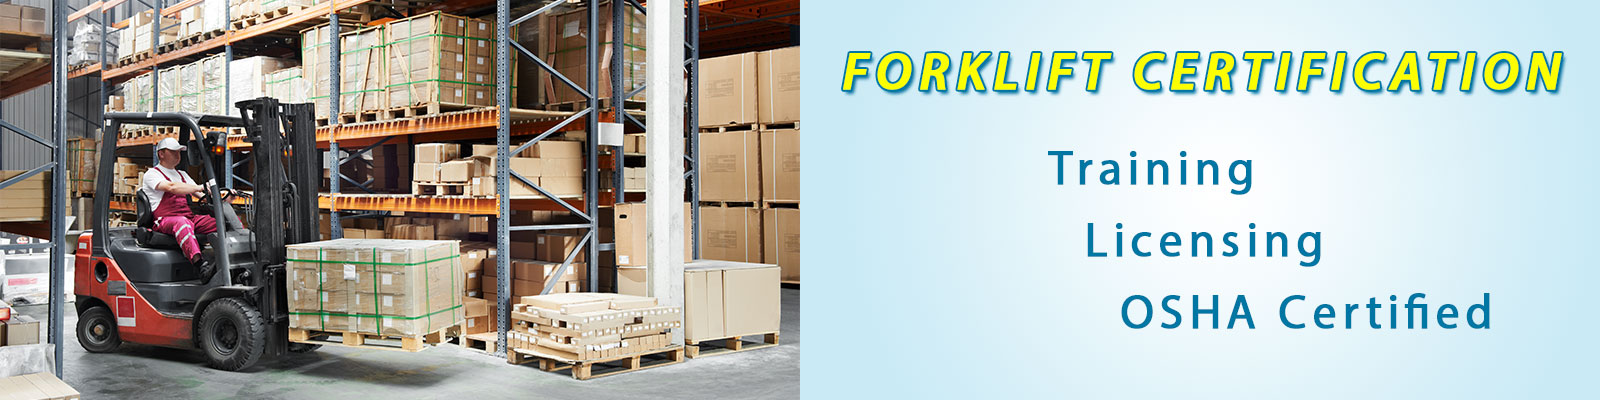 Forklift Certification Special Train Save Forklift License